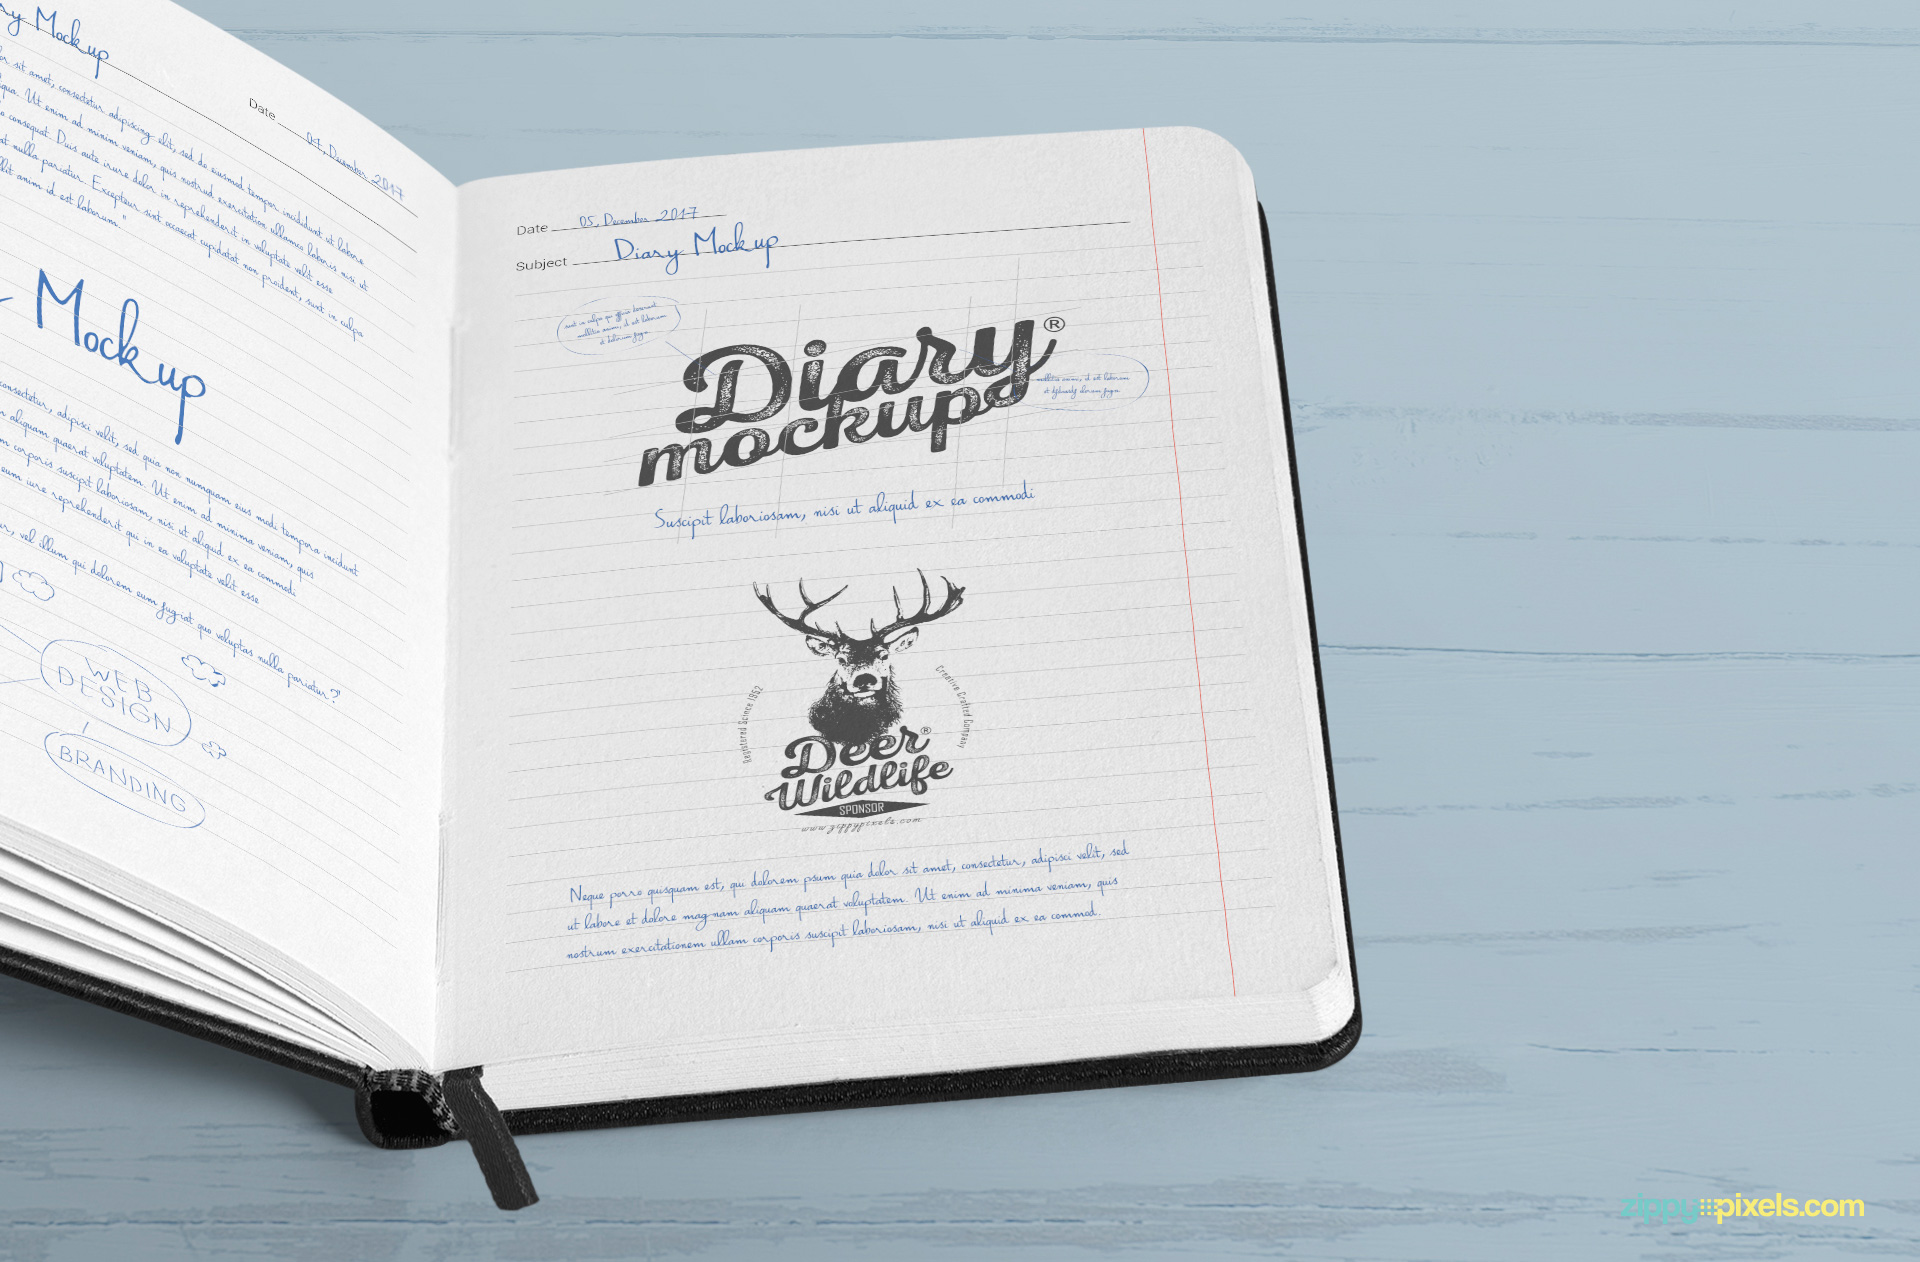 You can edit the color of ribbon marker and binding of this open diary mockup.